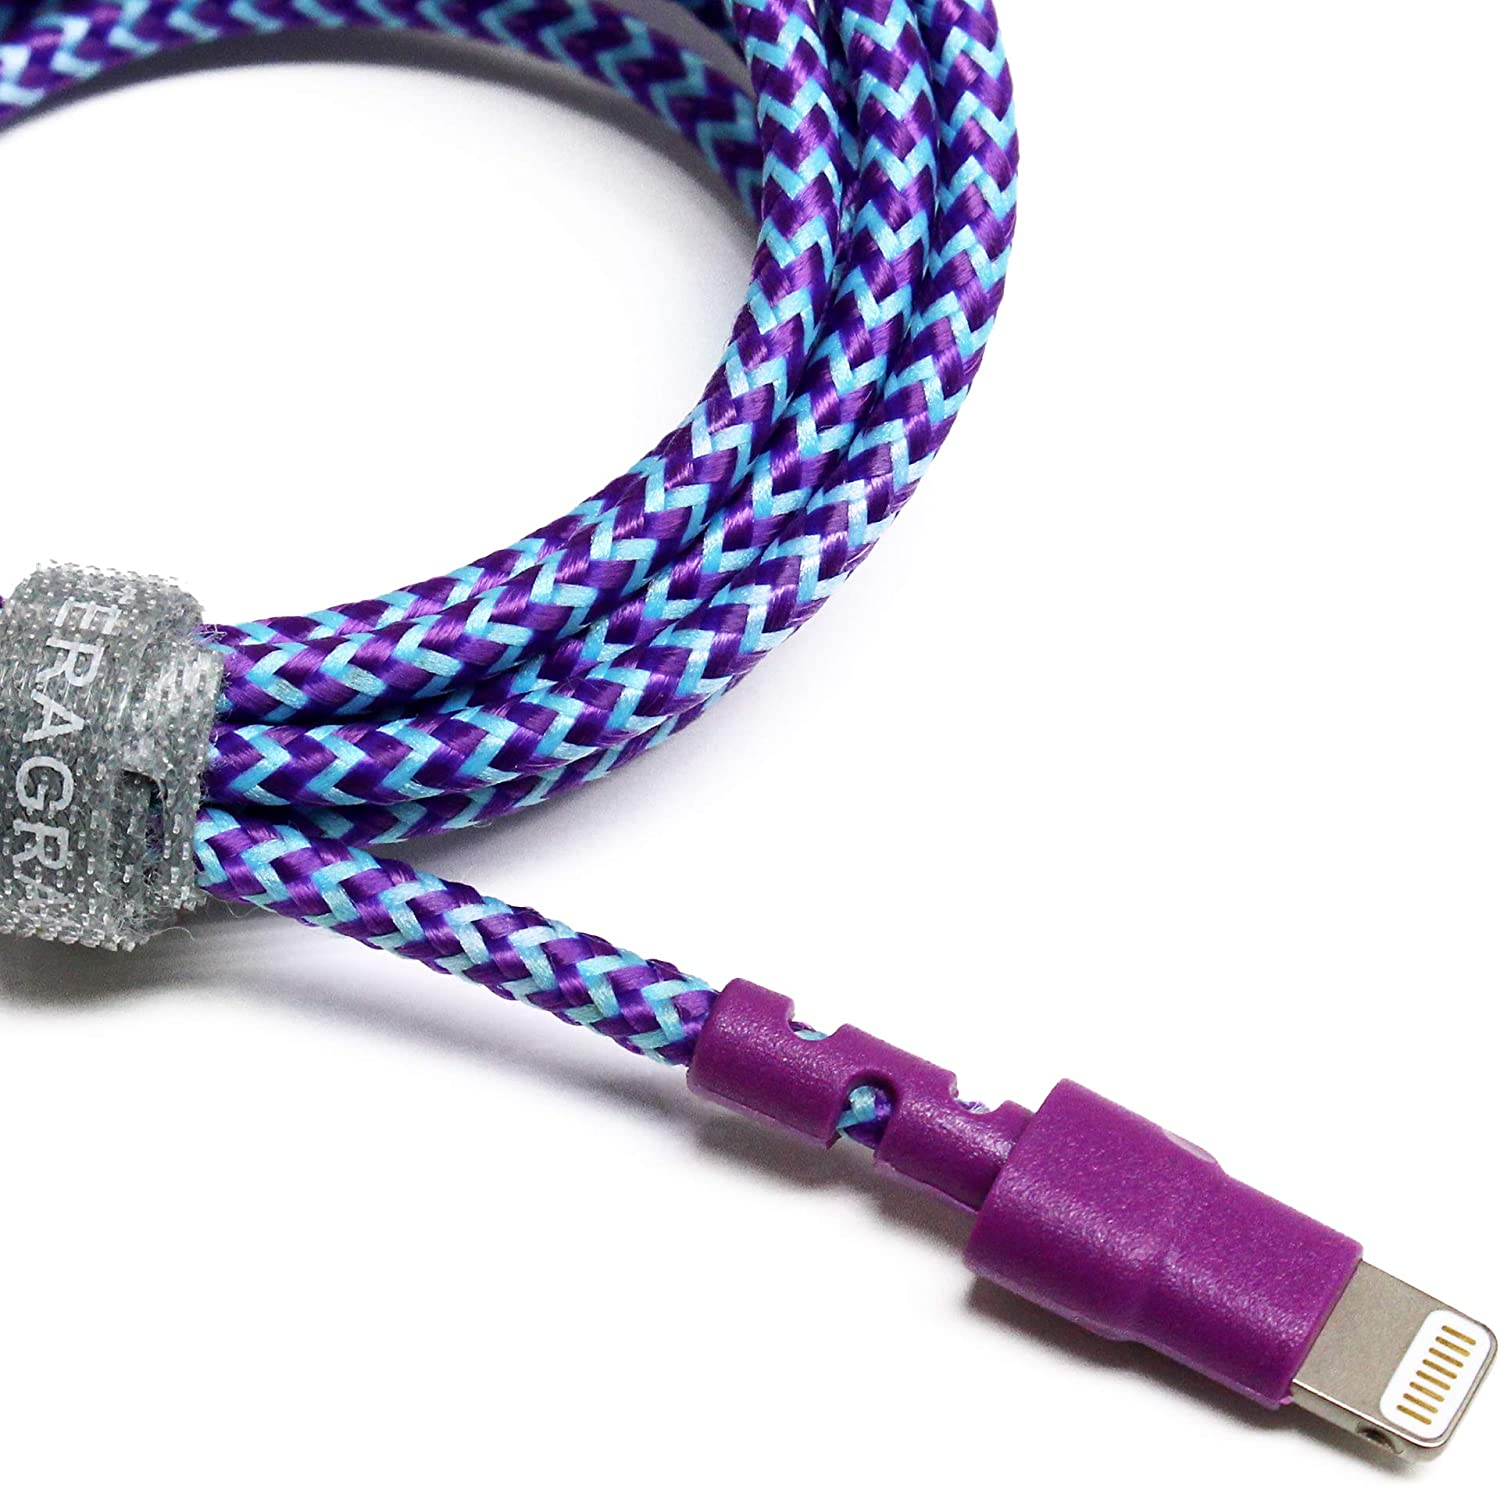 Tera Grand - Apple MFi Certified - 7X Durable Lightning to USB Braided Cable, 4 Ft iPhone 11 Pro Max 11 Pro 11 XS XS Max XR X 8 8 Plus 7 6 Plus 6 5s 5c 5 iPad Air Mini iPod (Purple & Blue)